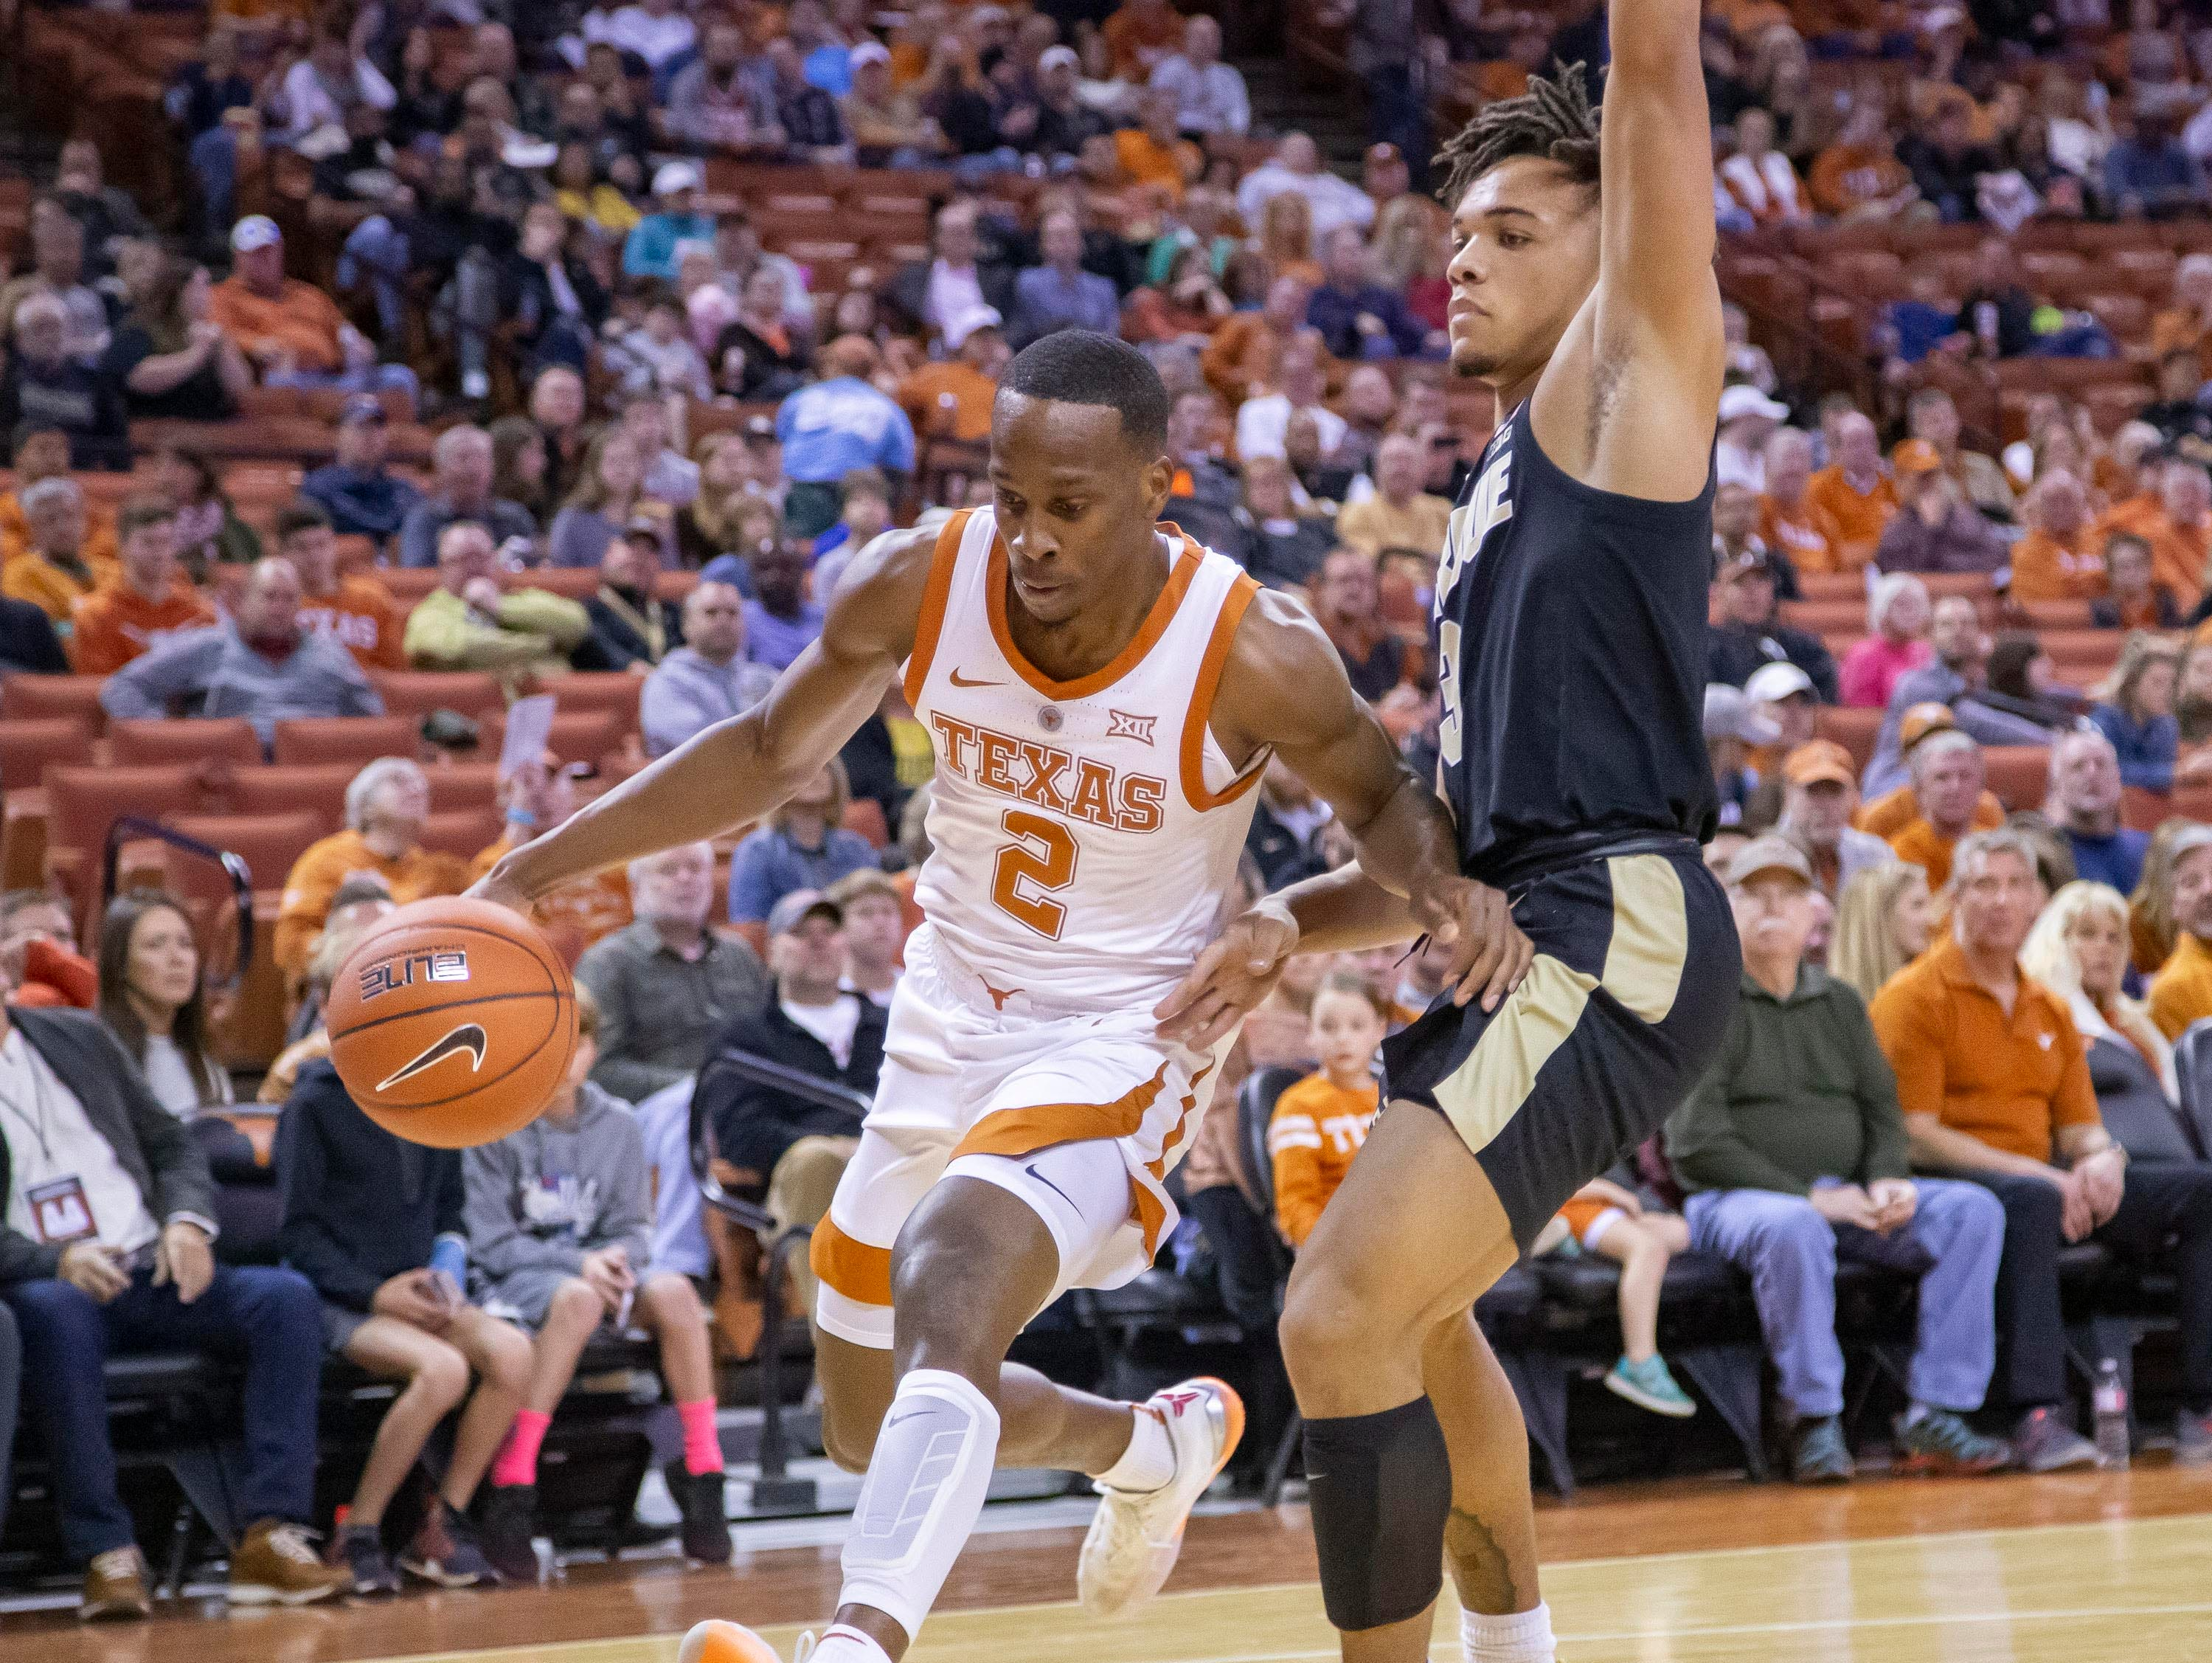 Dec 9, 2018; Austin, TX, USA; Texas Longhorns dribbles the ball to the basket as Purdue Boilermakers guard Carsen Edwards (3) defends during the first half at Frank Erwin Center. Mandatory Credit: John Gutierrez-USA TODAY Sports